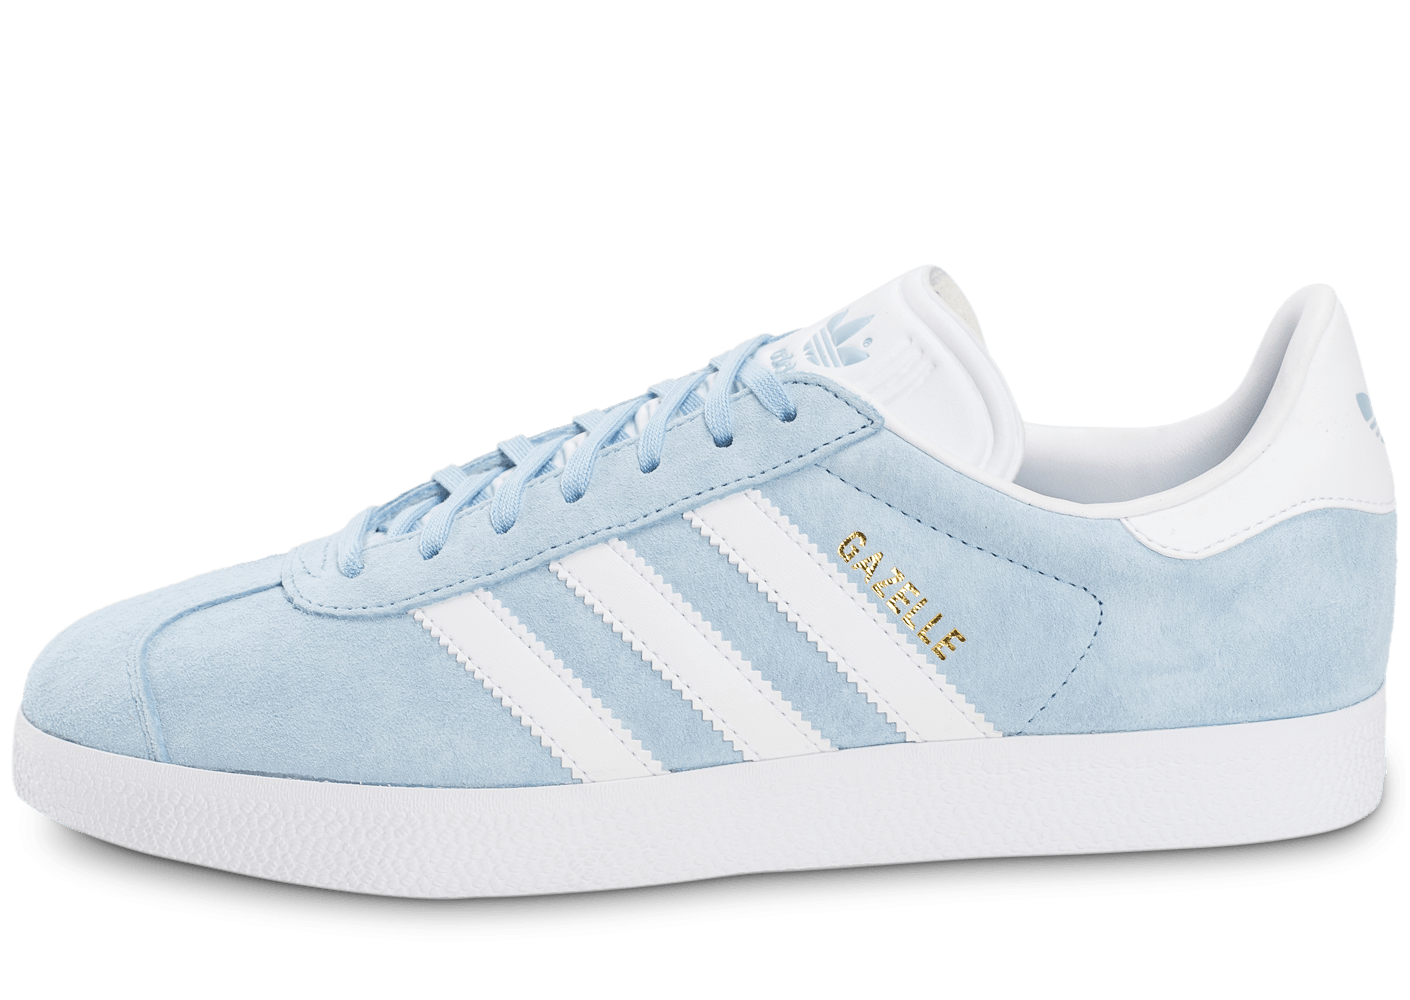 adidas gazelle bleu ciel chaussures homme chausport. Black Bedroom Furniture Sets. Home Design Ideas